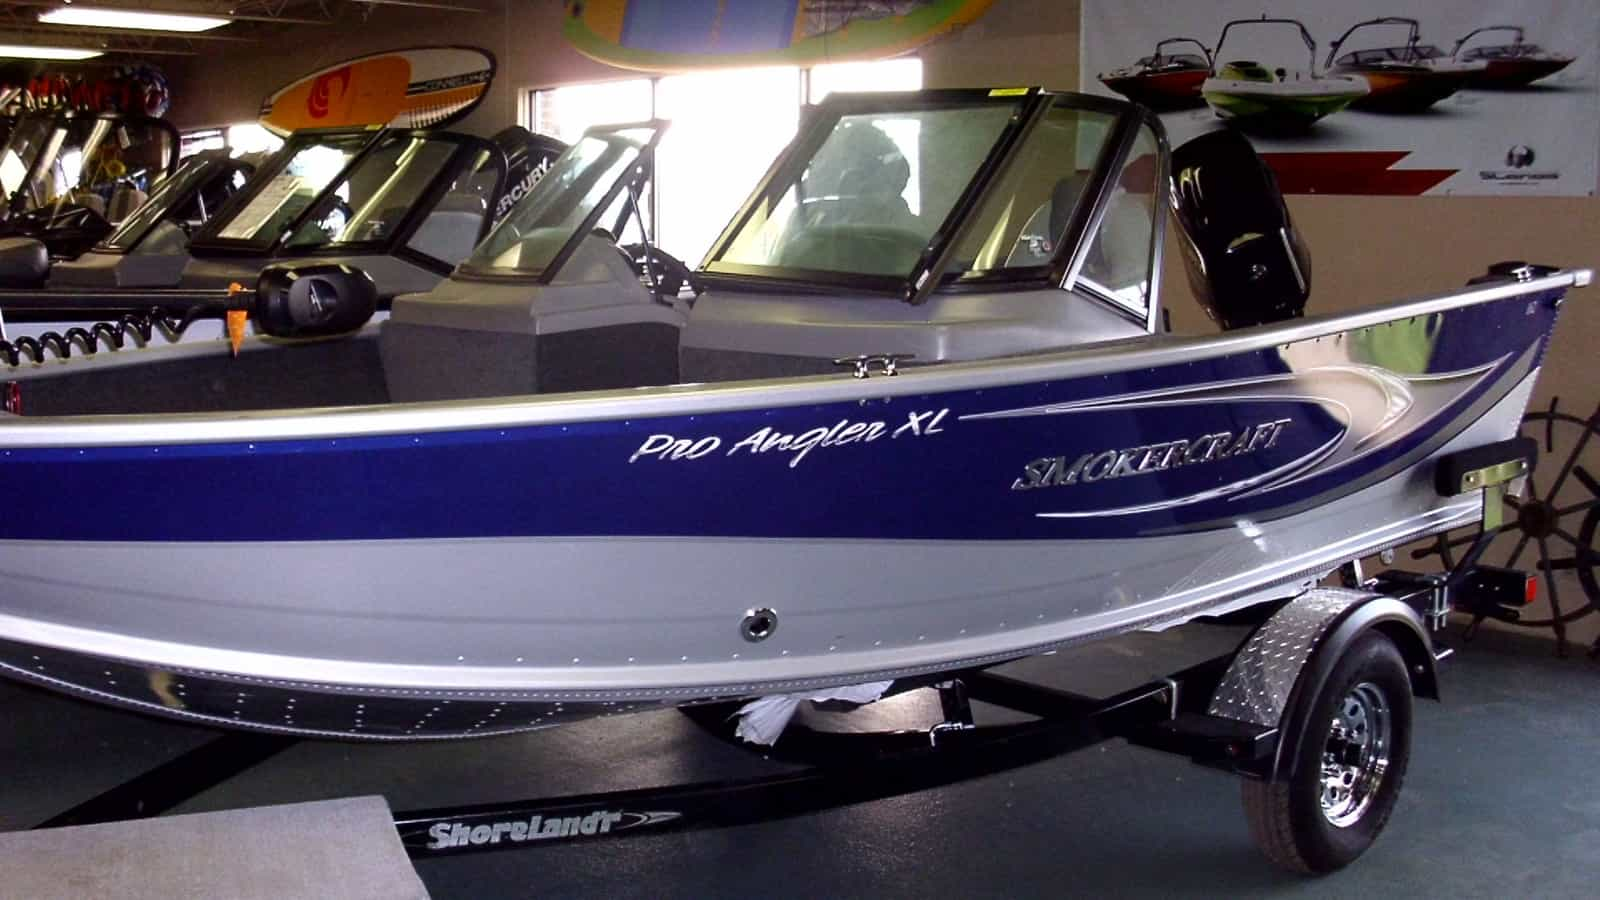 NEW 2017 Smokercraft 162 Pro Angler XL - Shipwreck Marine